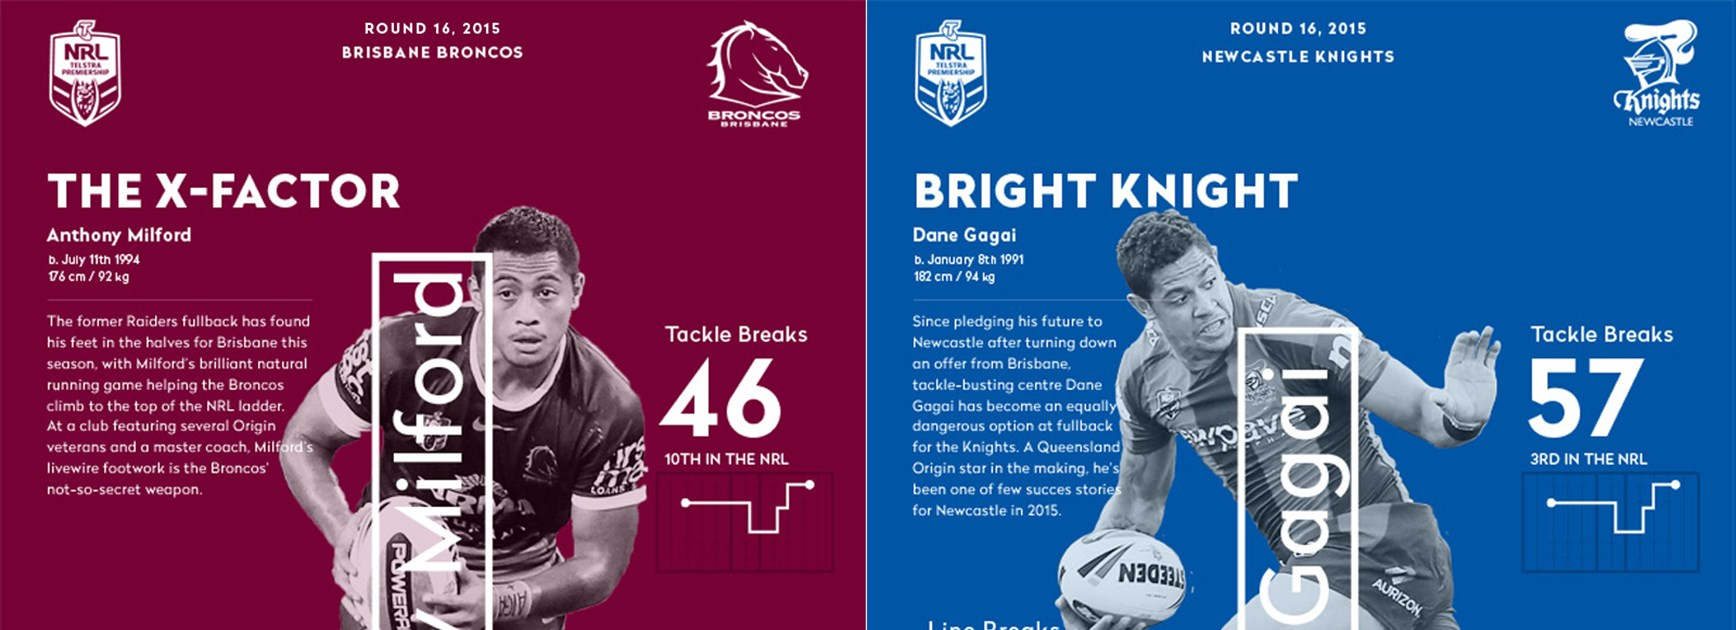 Friday night's clash will feature two of the NRL's most electrifying ball-runners, Anthony Milford and Dane Gagai.